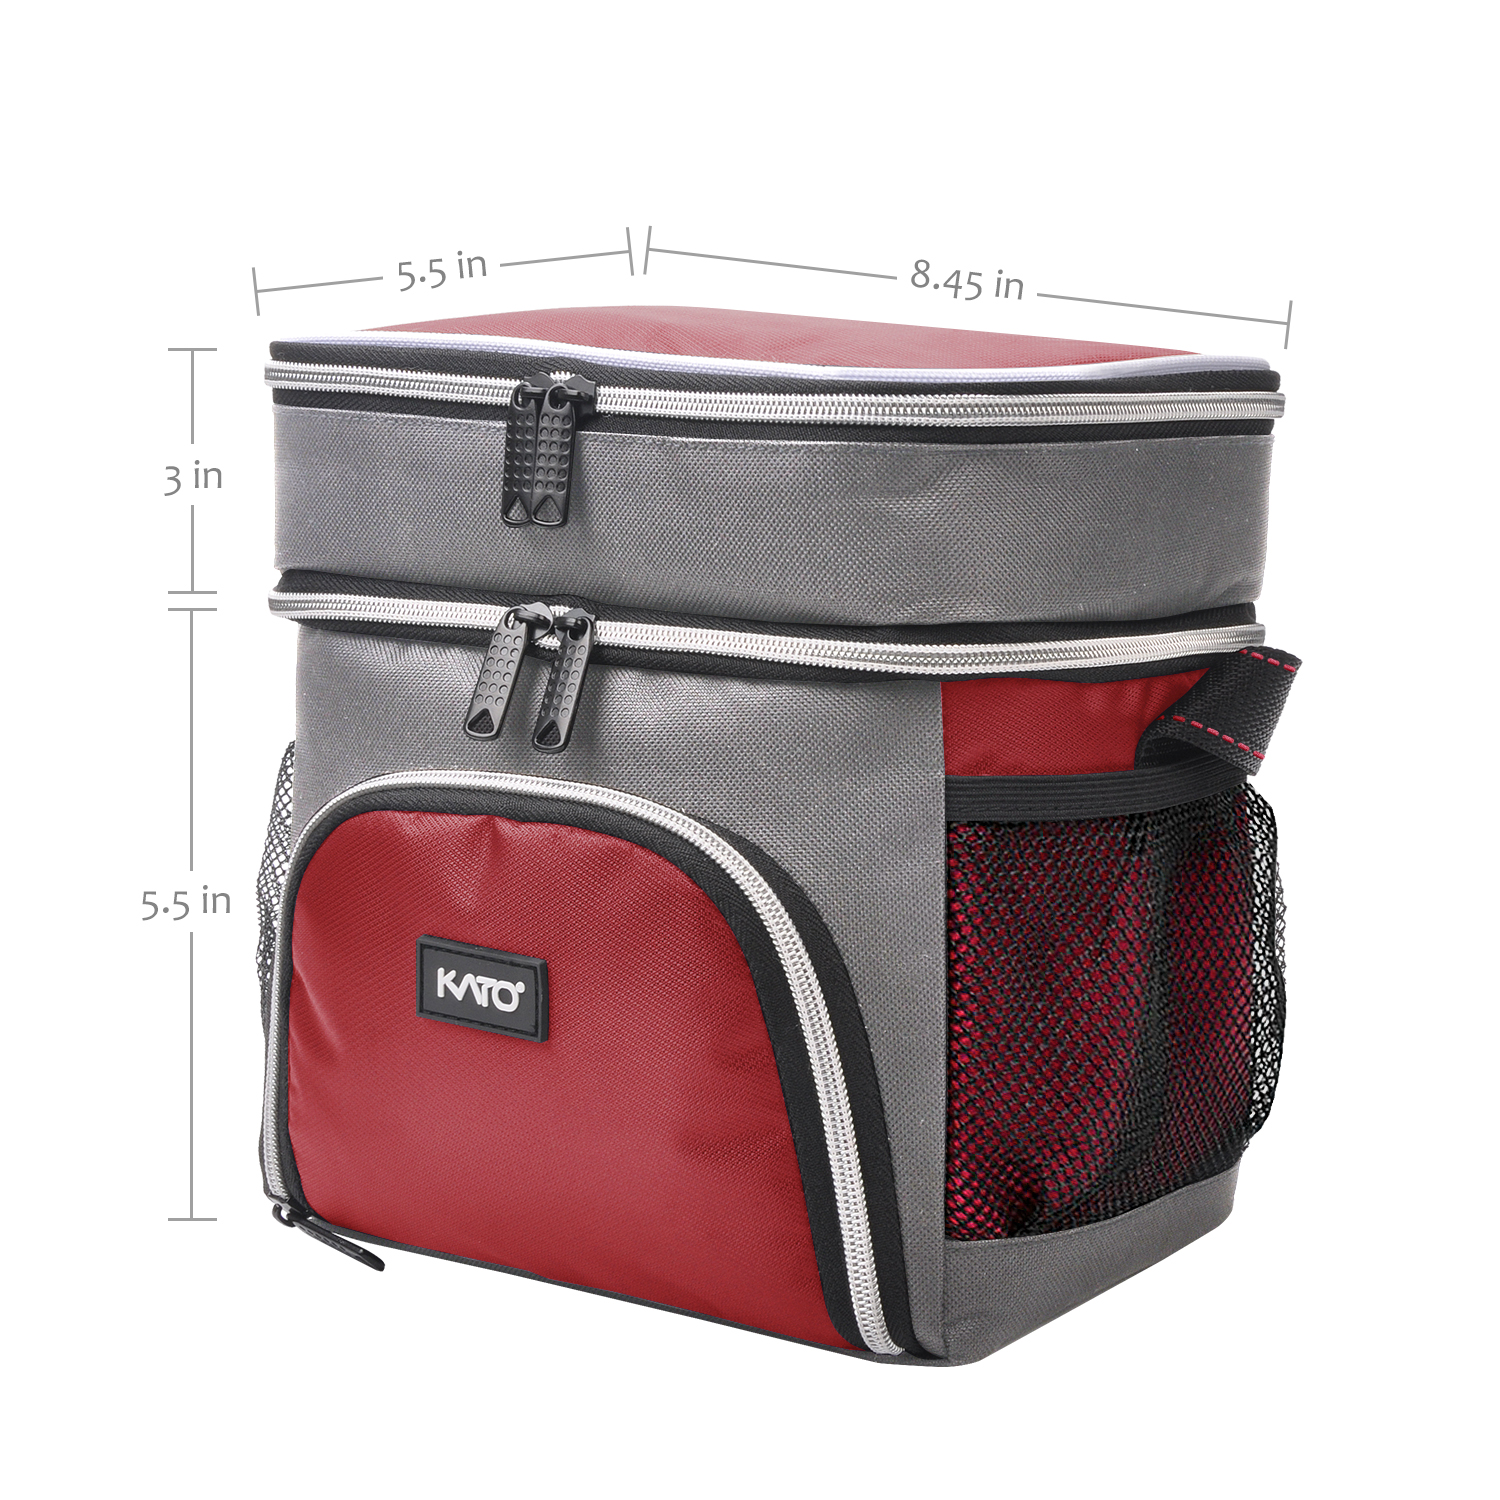 Insulated Lunch Bag Box For Women Amp Men Thermos Cooler Hot